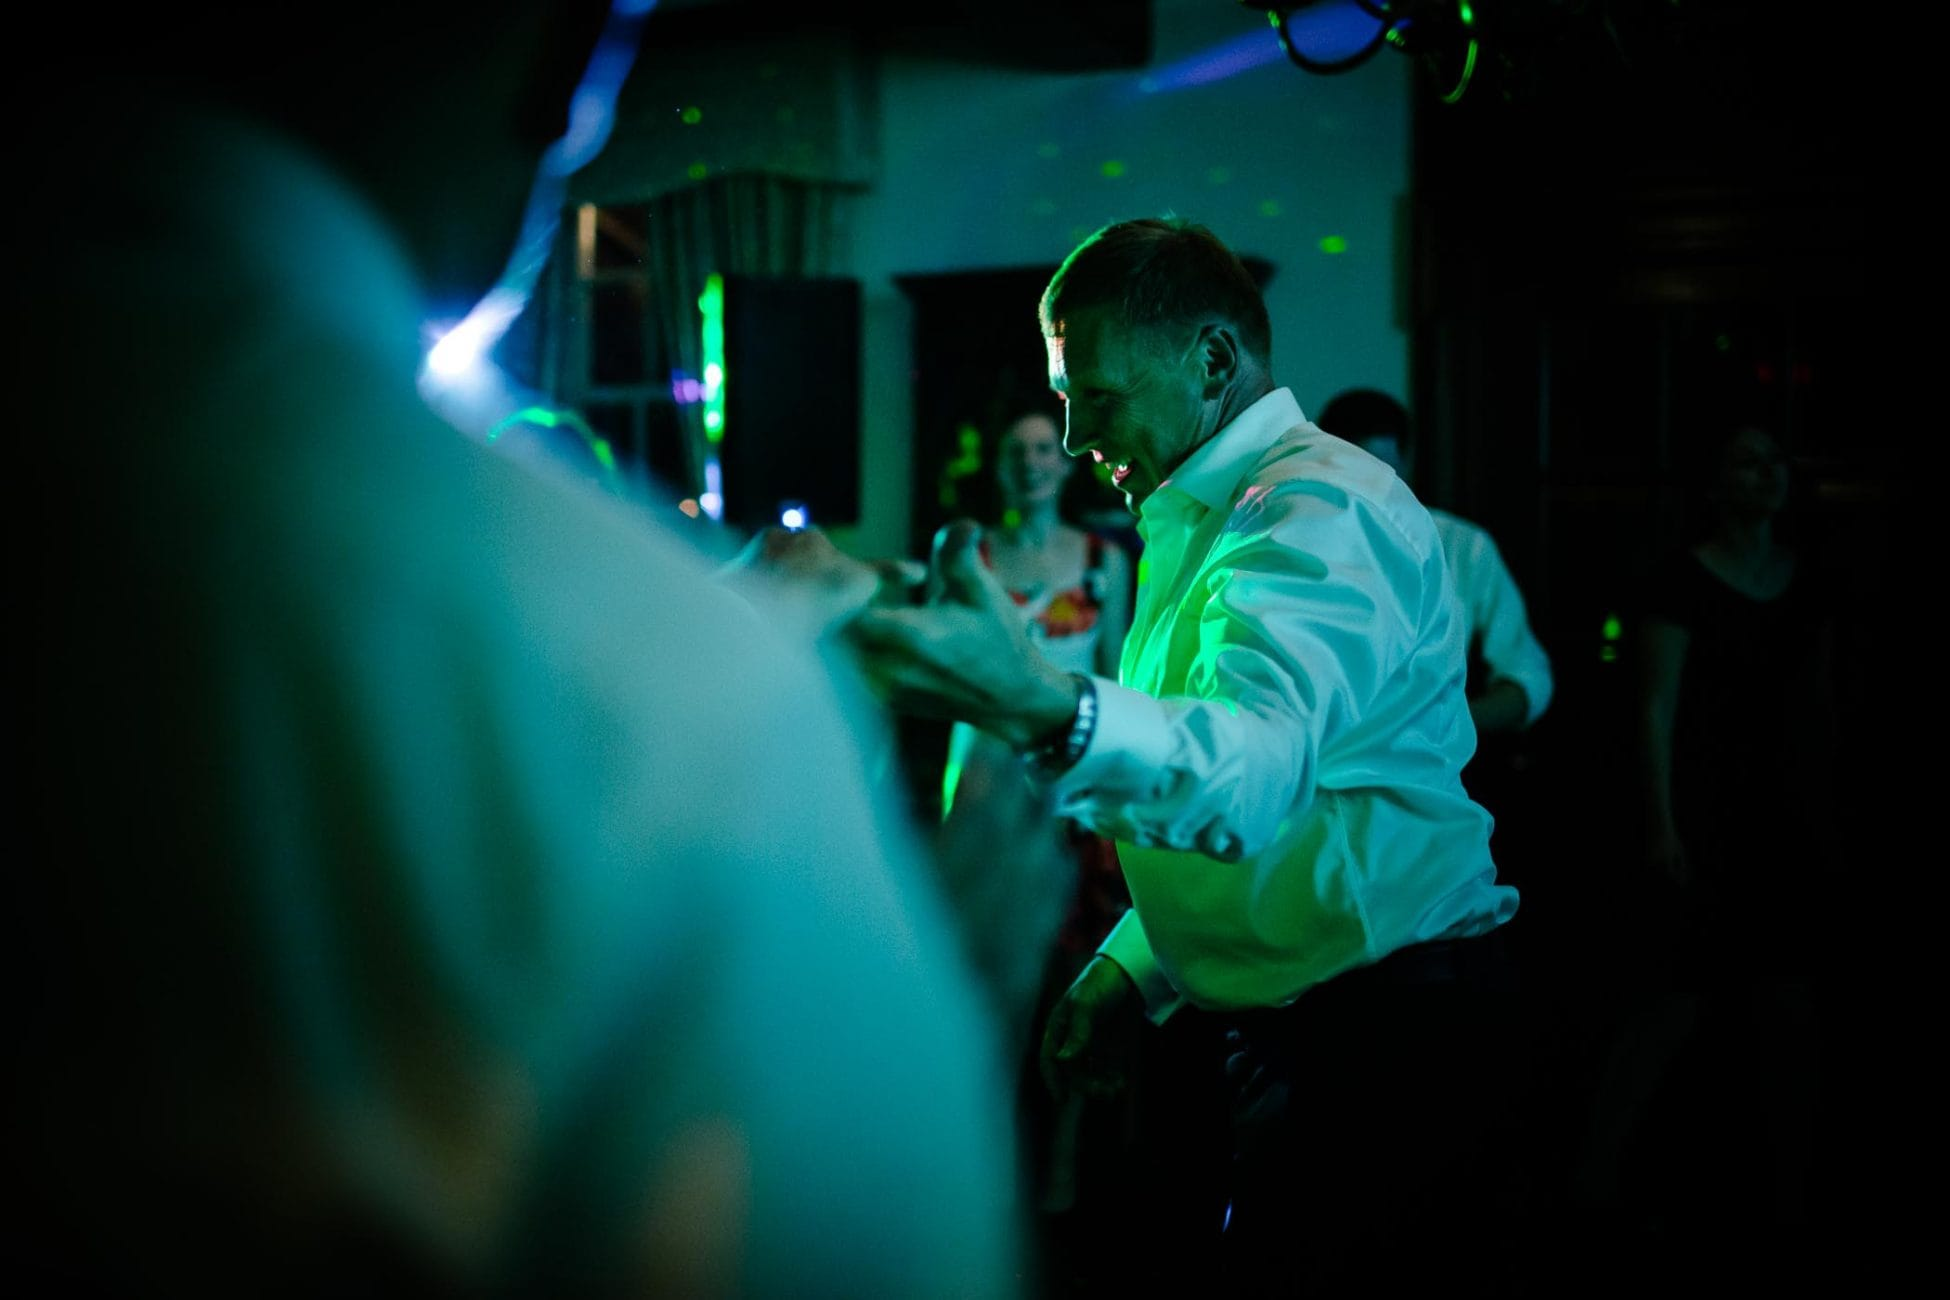 A man dancing to DJ music with green light and lasers at this McLean House at Estates of Sunnybrook wedding in Toronto. Documentary wedding photography by Pavel Kounine.